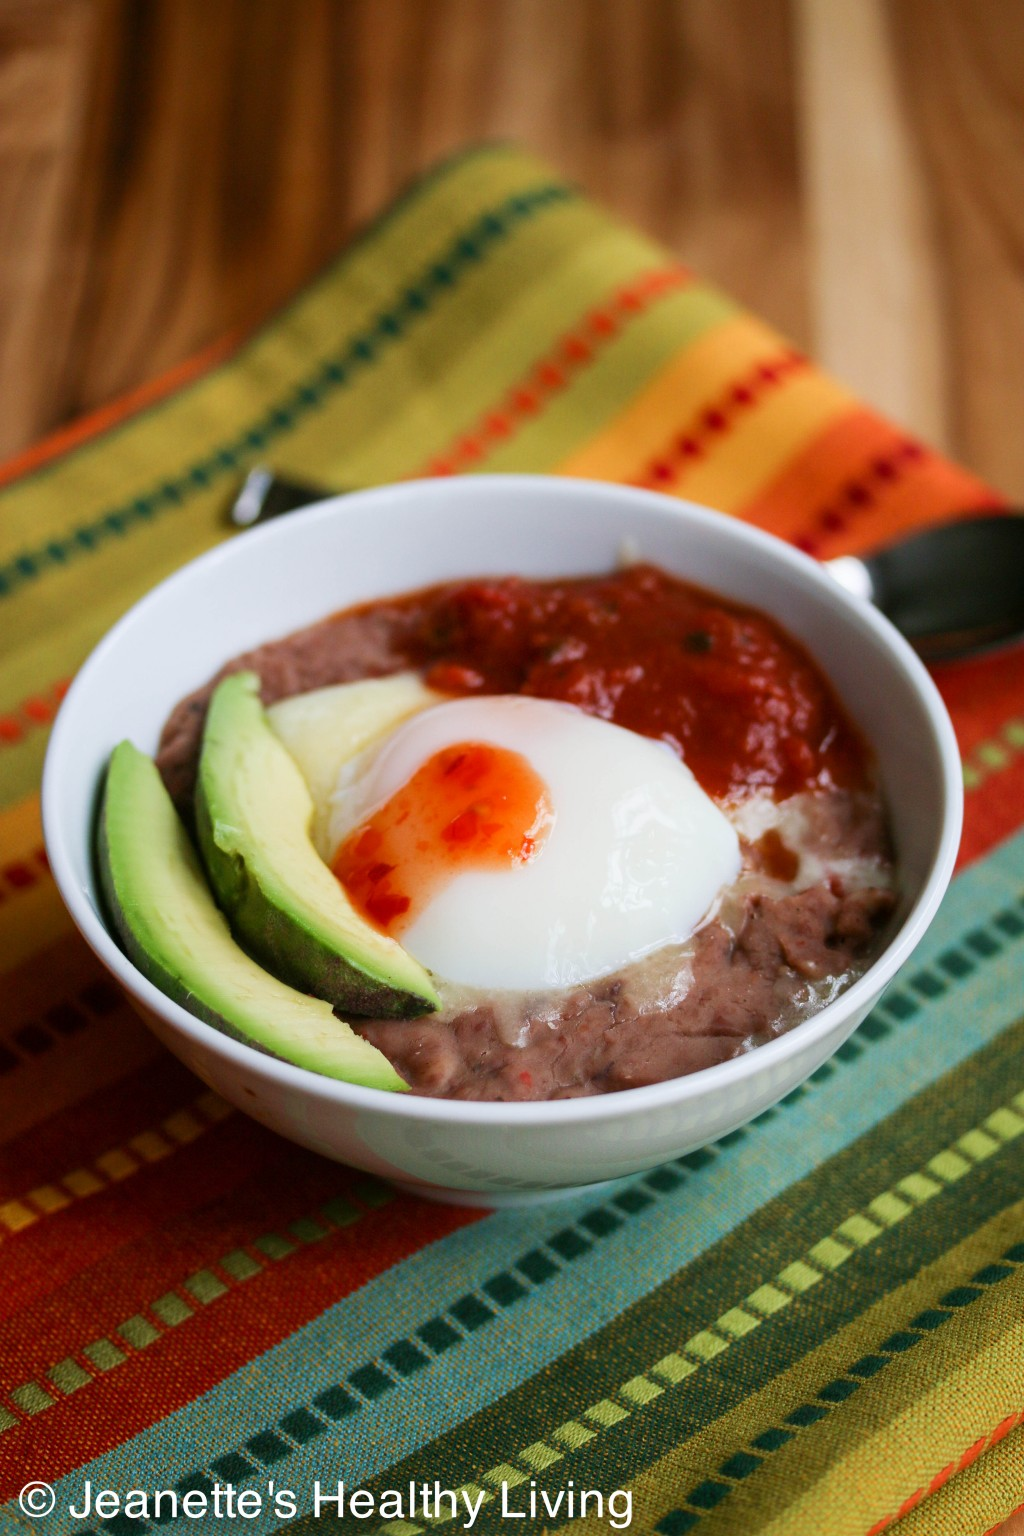 Breakfast Refried Bean Bowl © Jeanette's Healthy Living